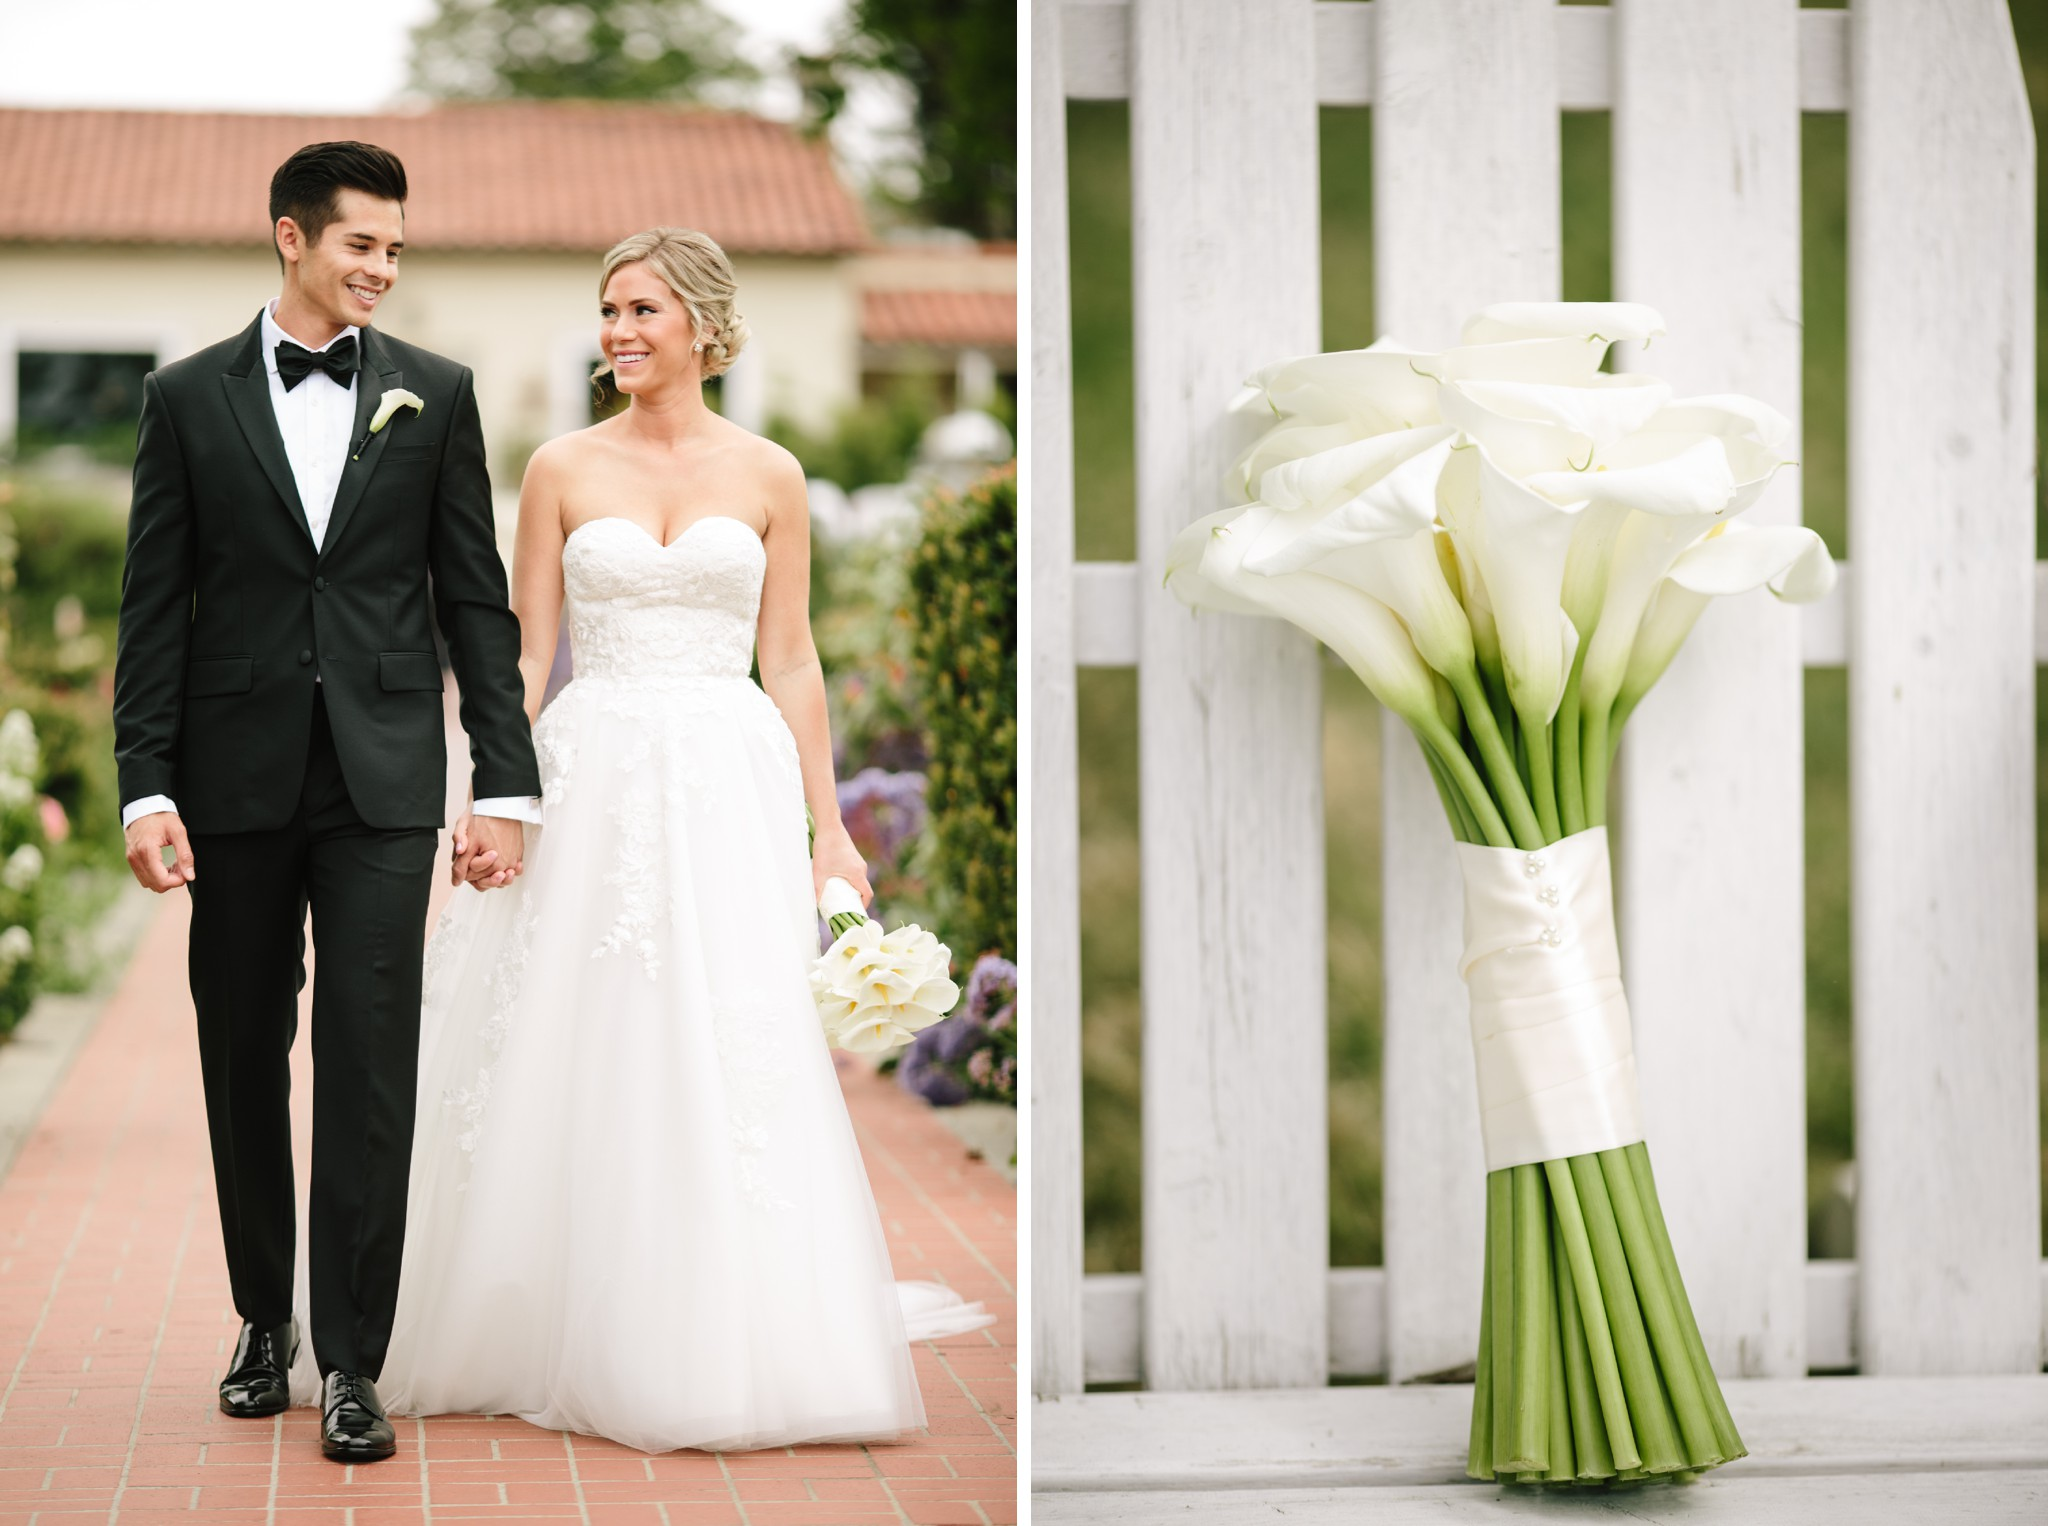 92 THEDELAURAS_THE_INN_AT_RANCHO_SANTA_FE_WEDDING_BOUQUET_BLOG092.jpg